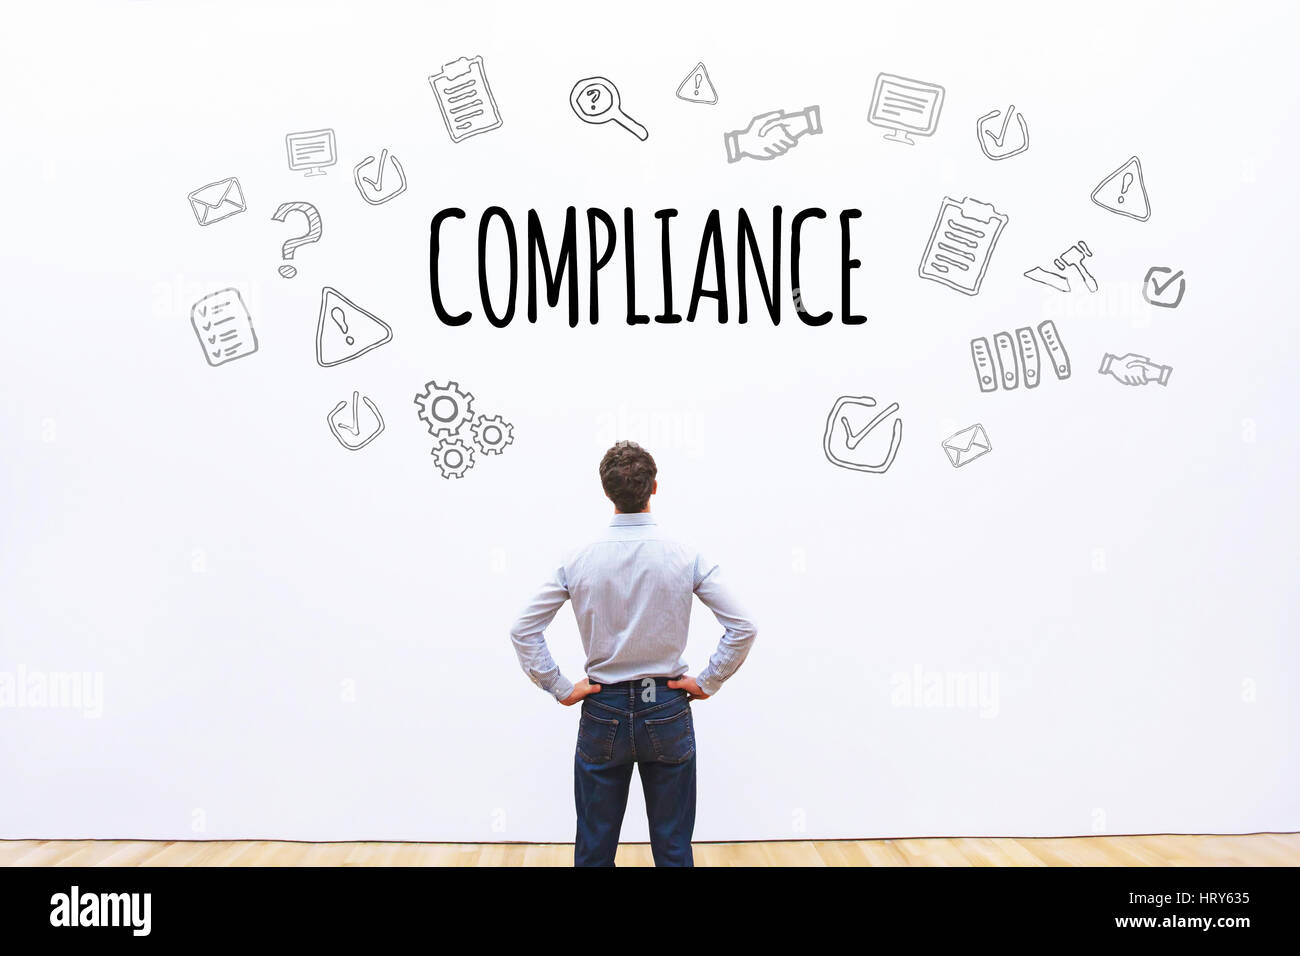 compliance concept on white background with scheme drawn icons - Stock Image